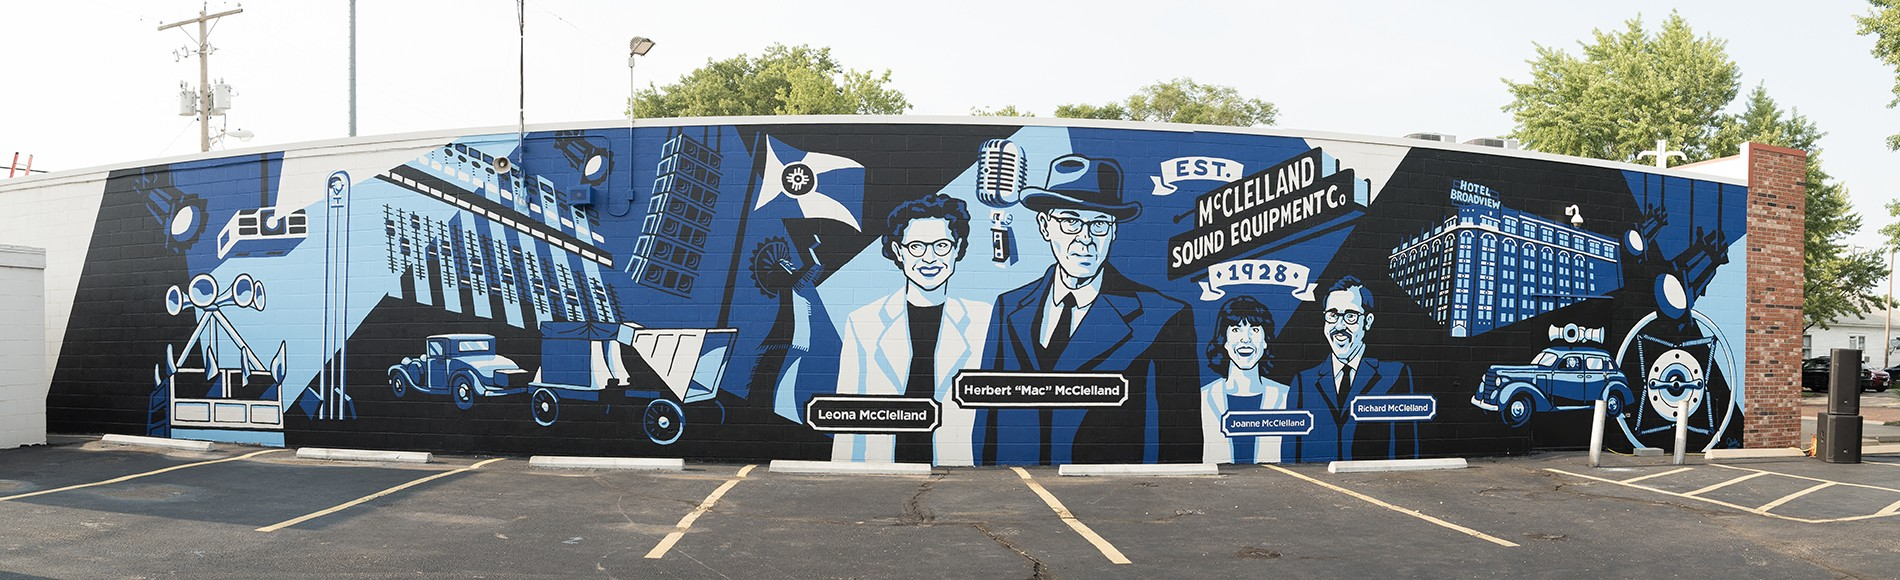 Mural of the history on the McClelland Sound building